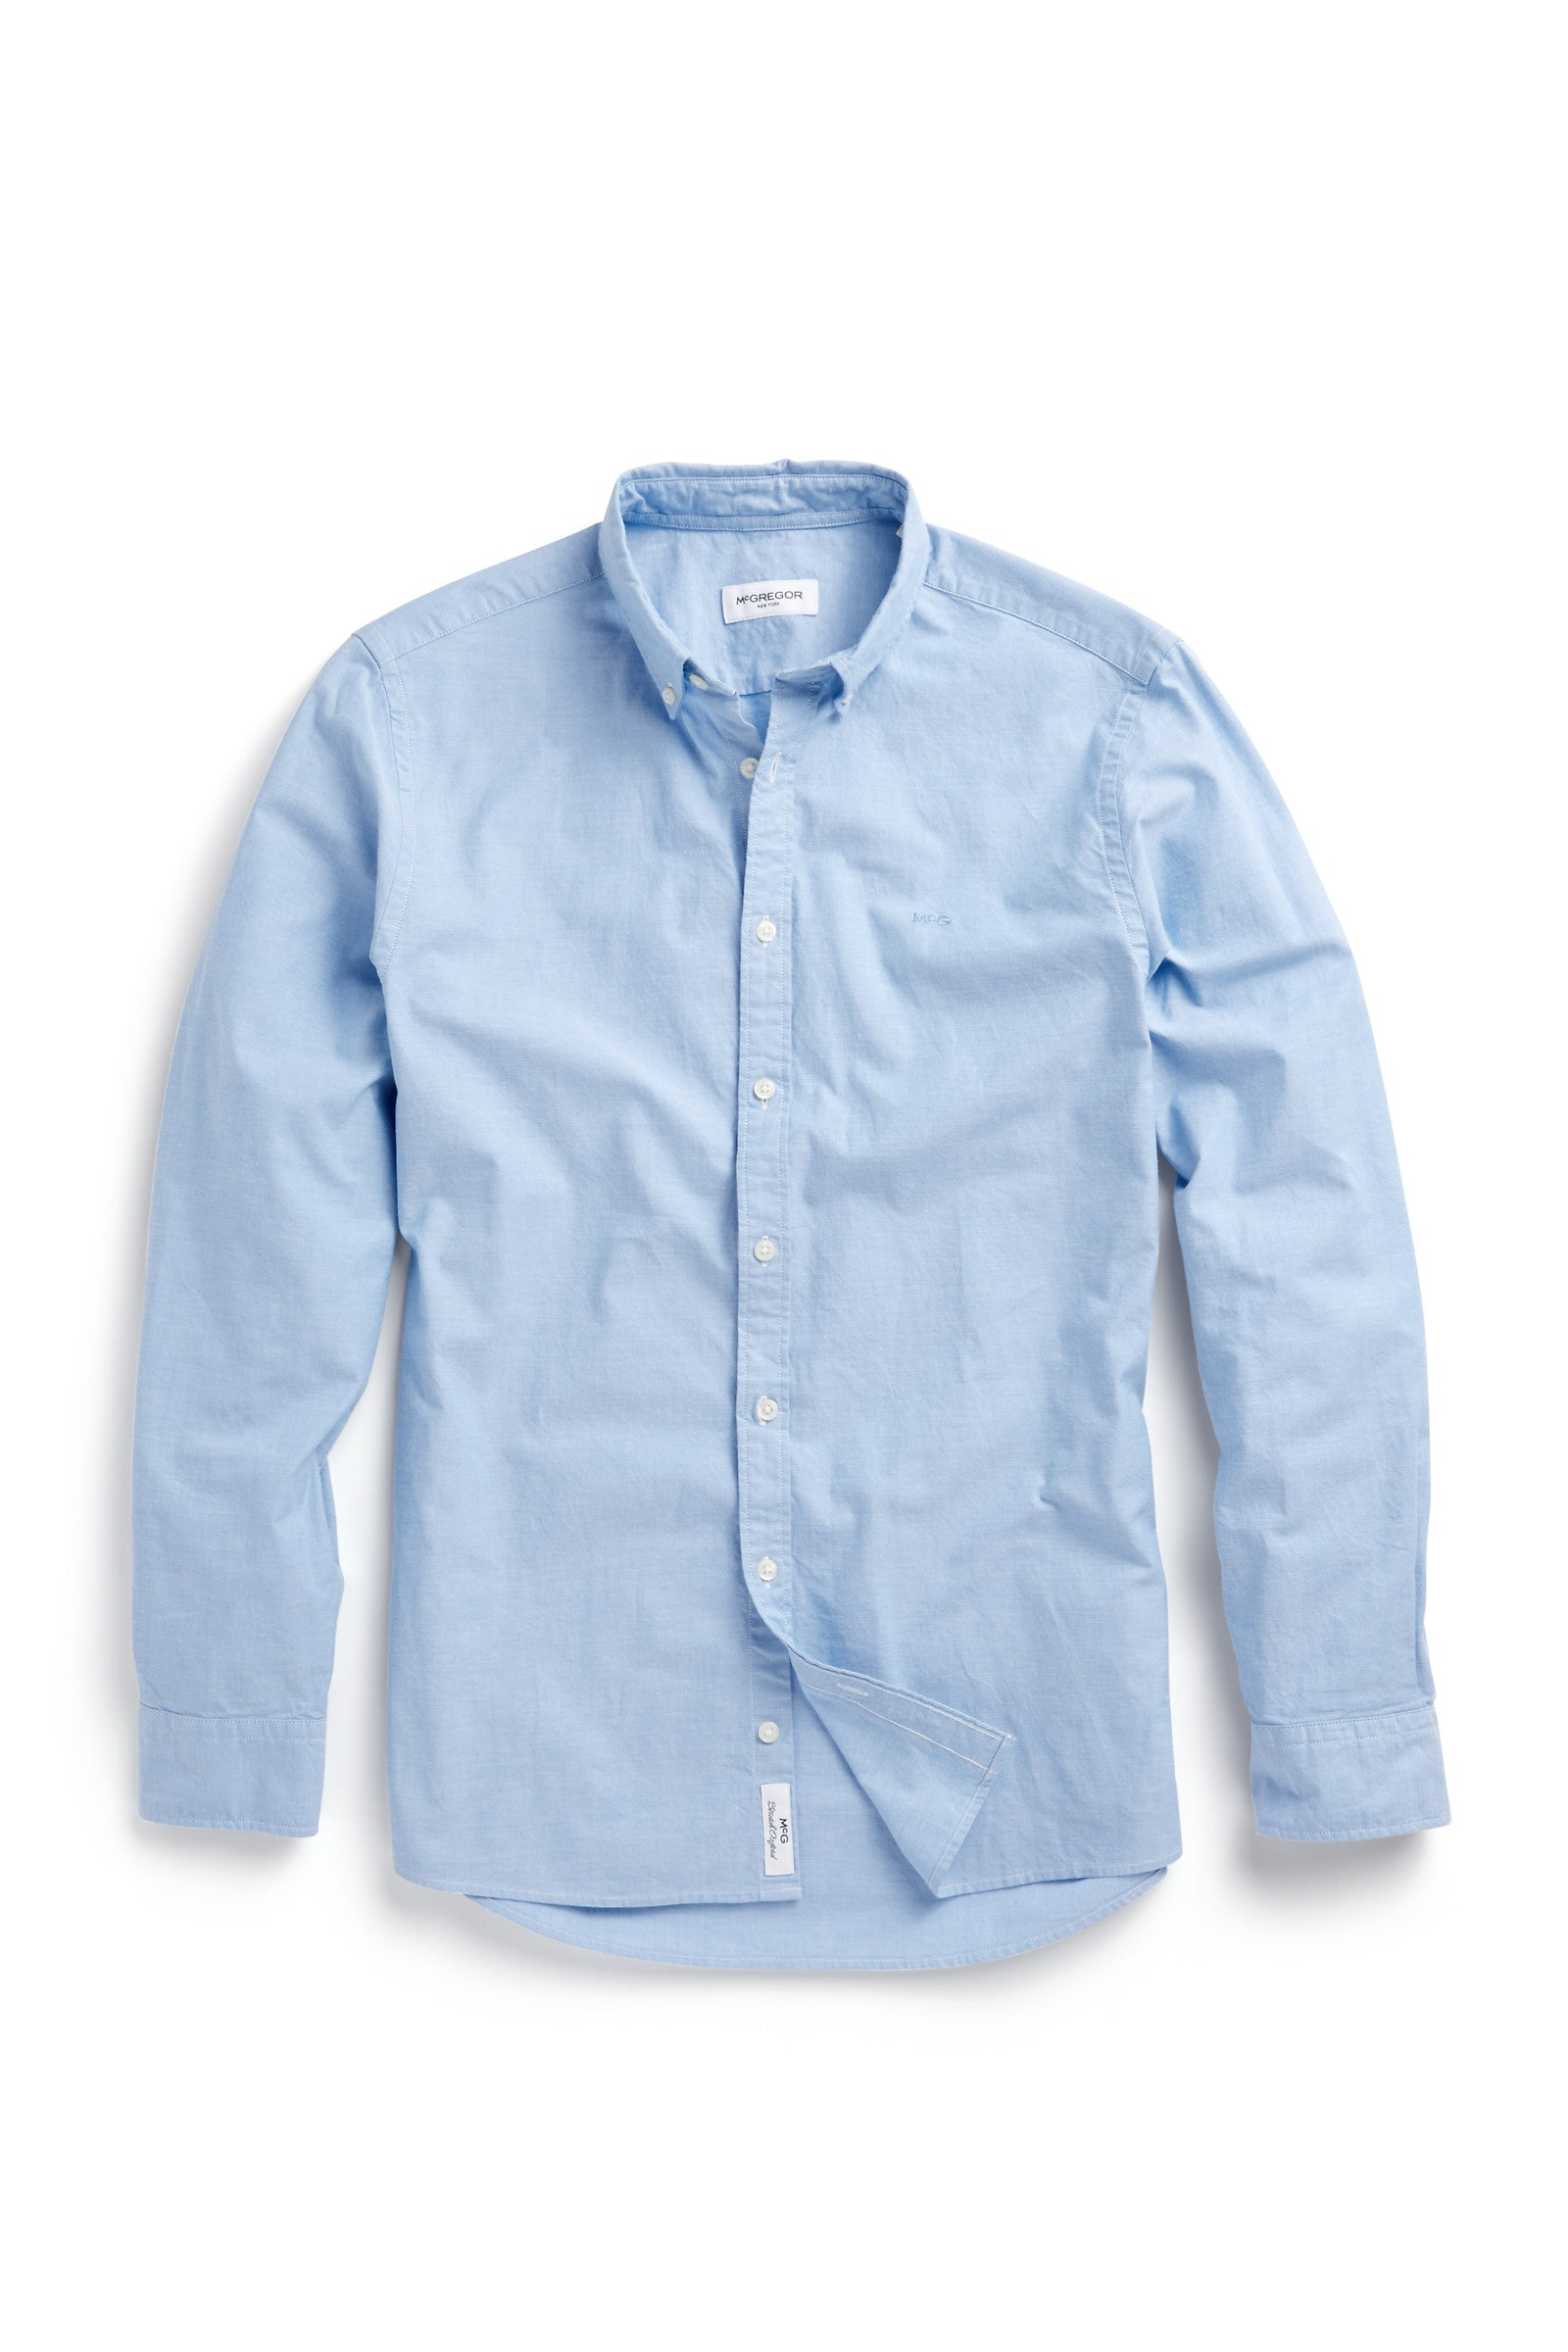 Oxford Shirt in Regular Fit with Stretch